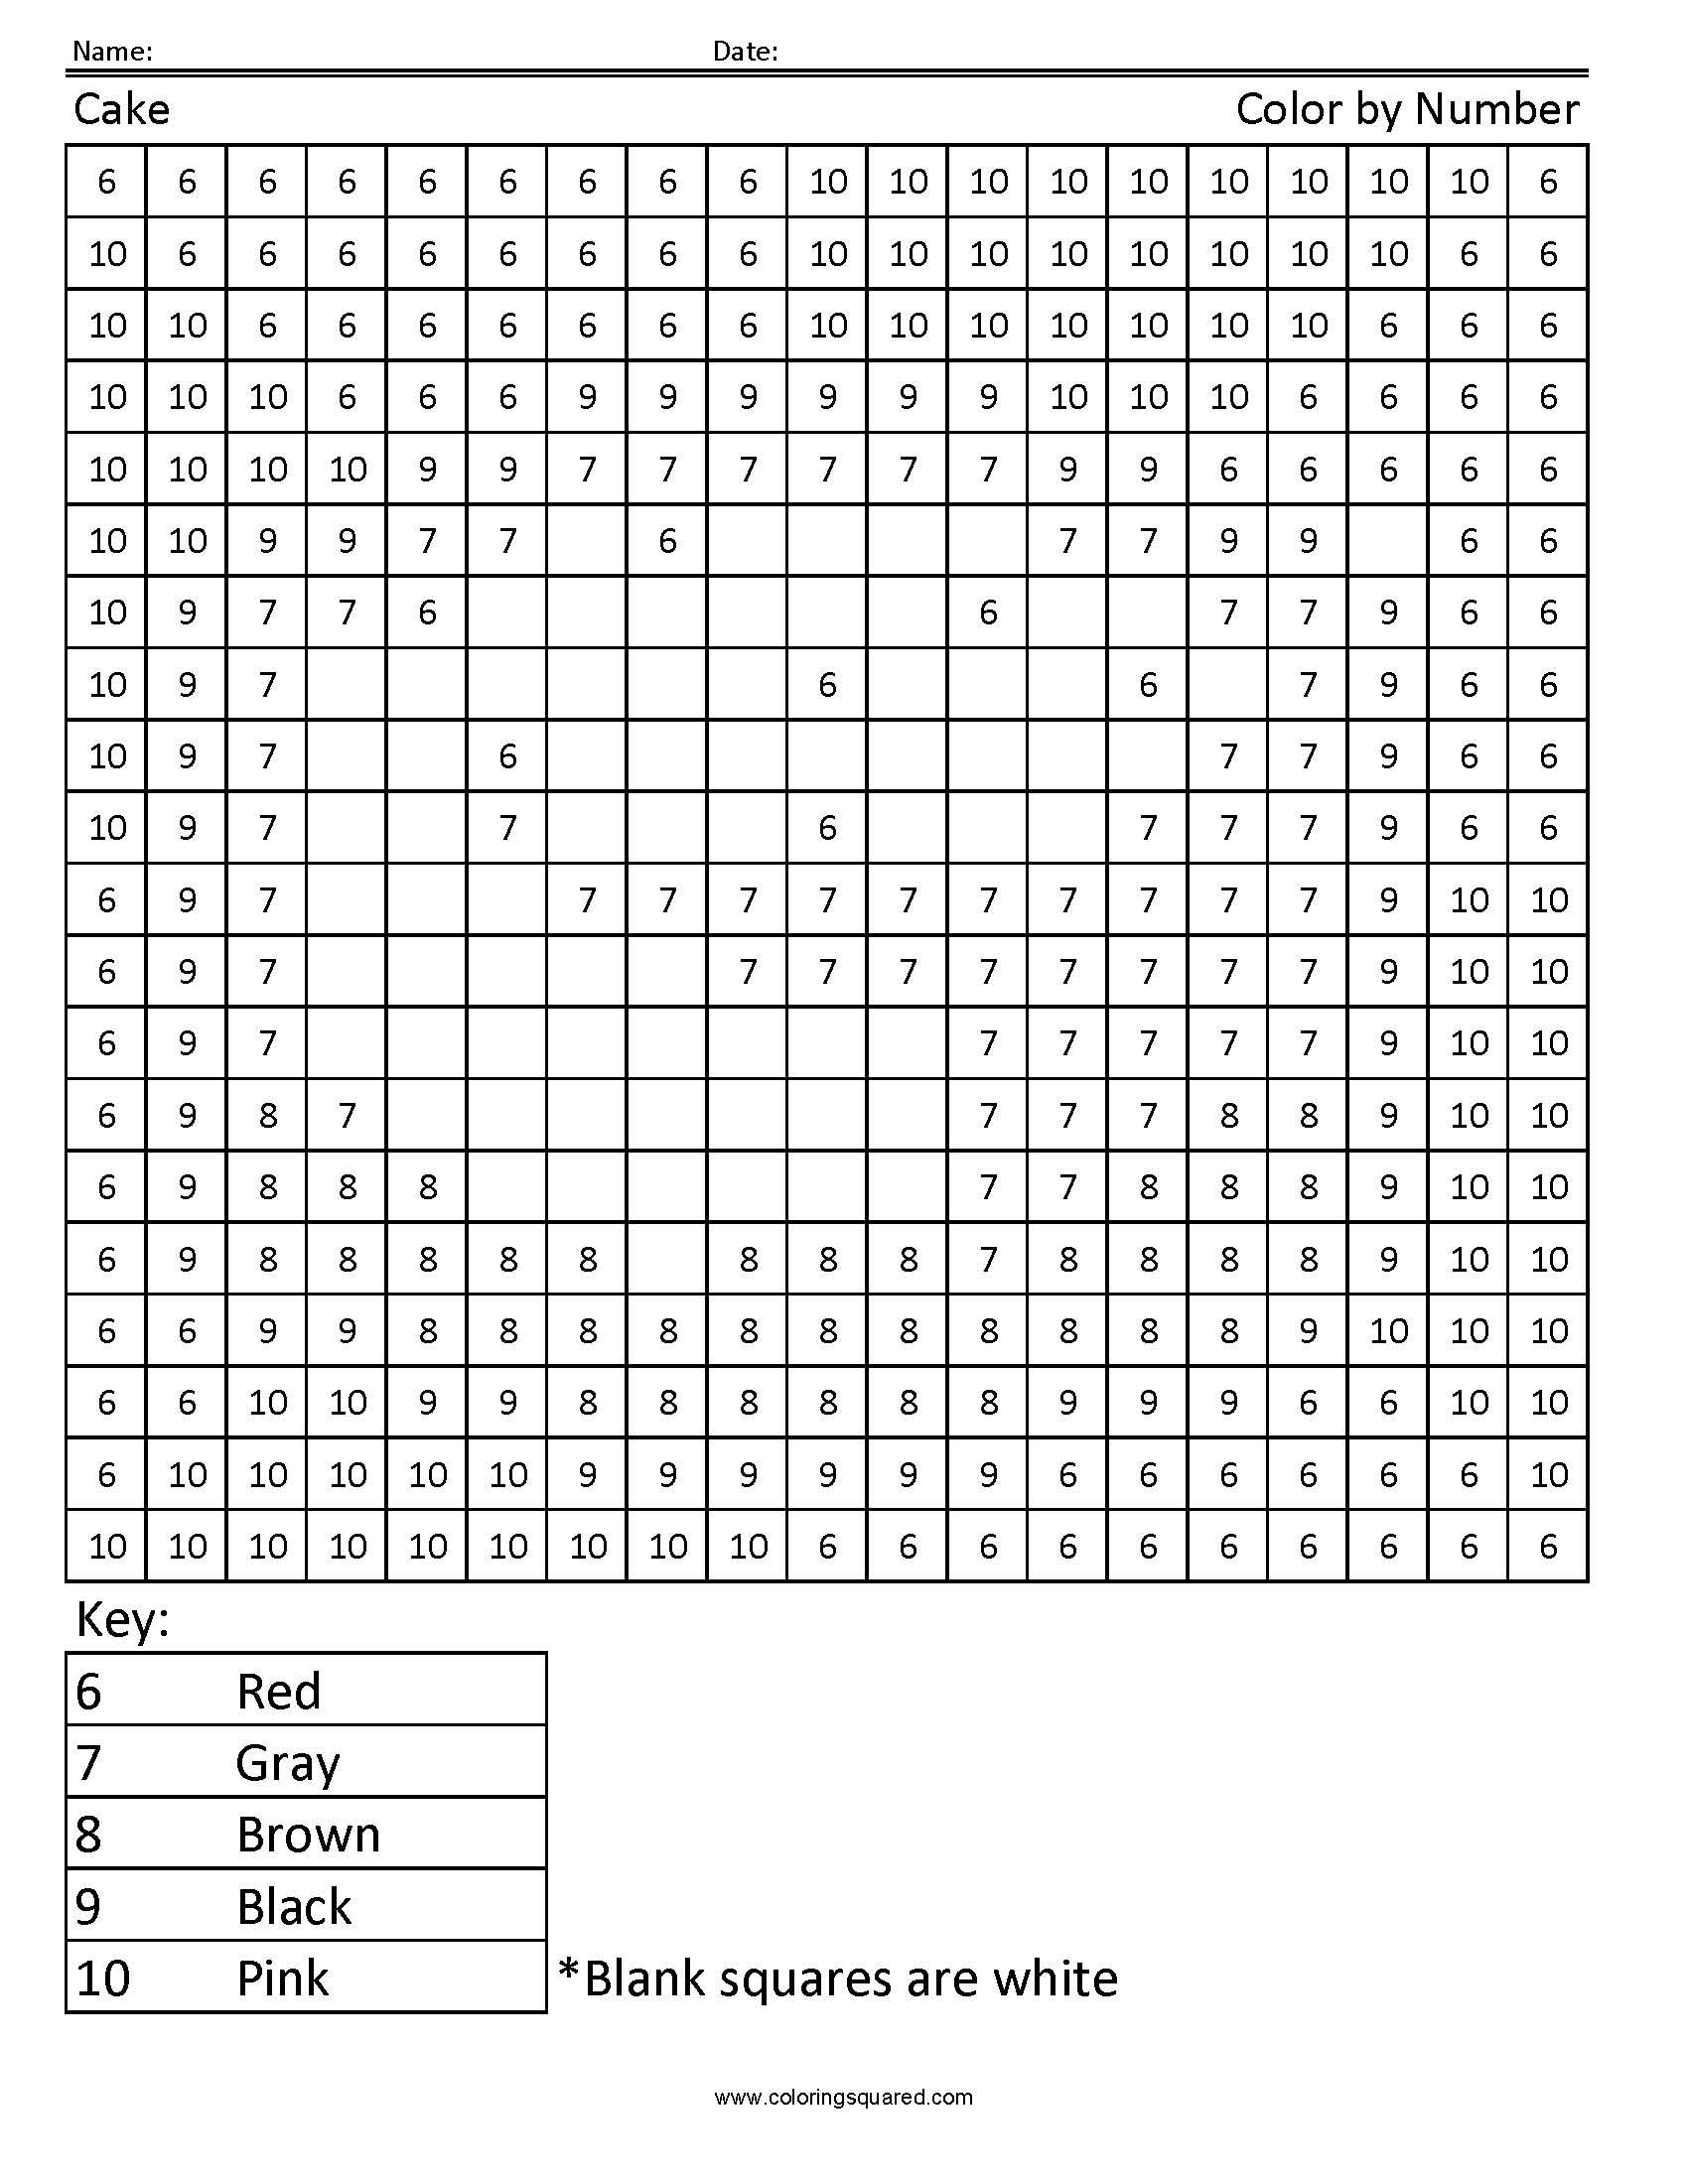 Cake Color By Number Worksheet